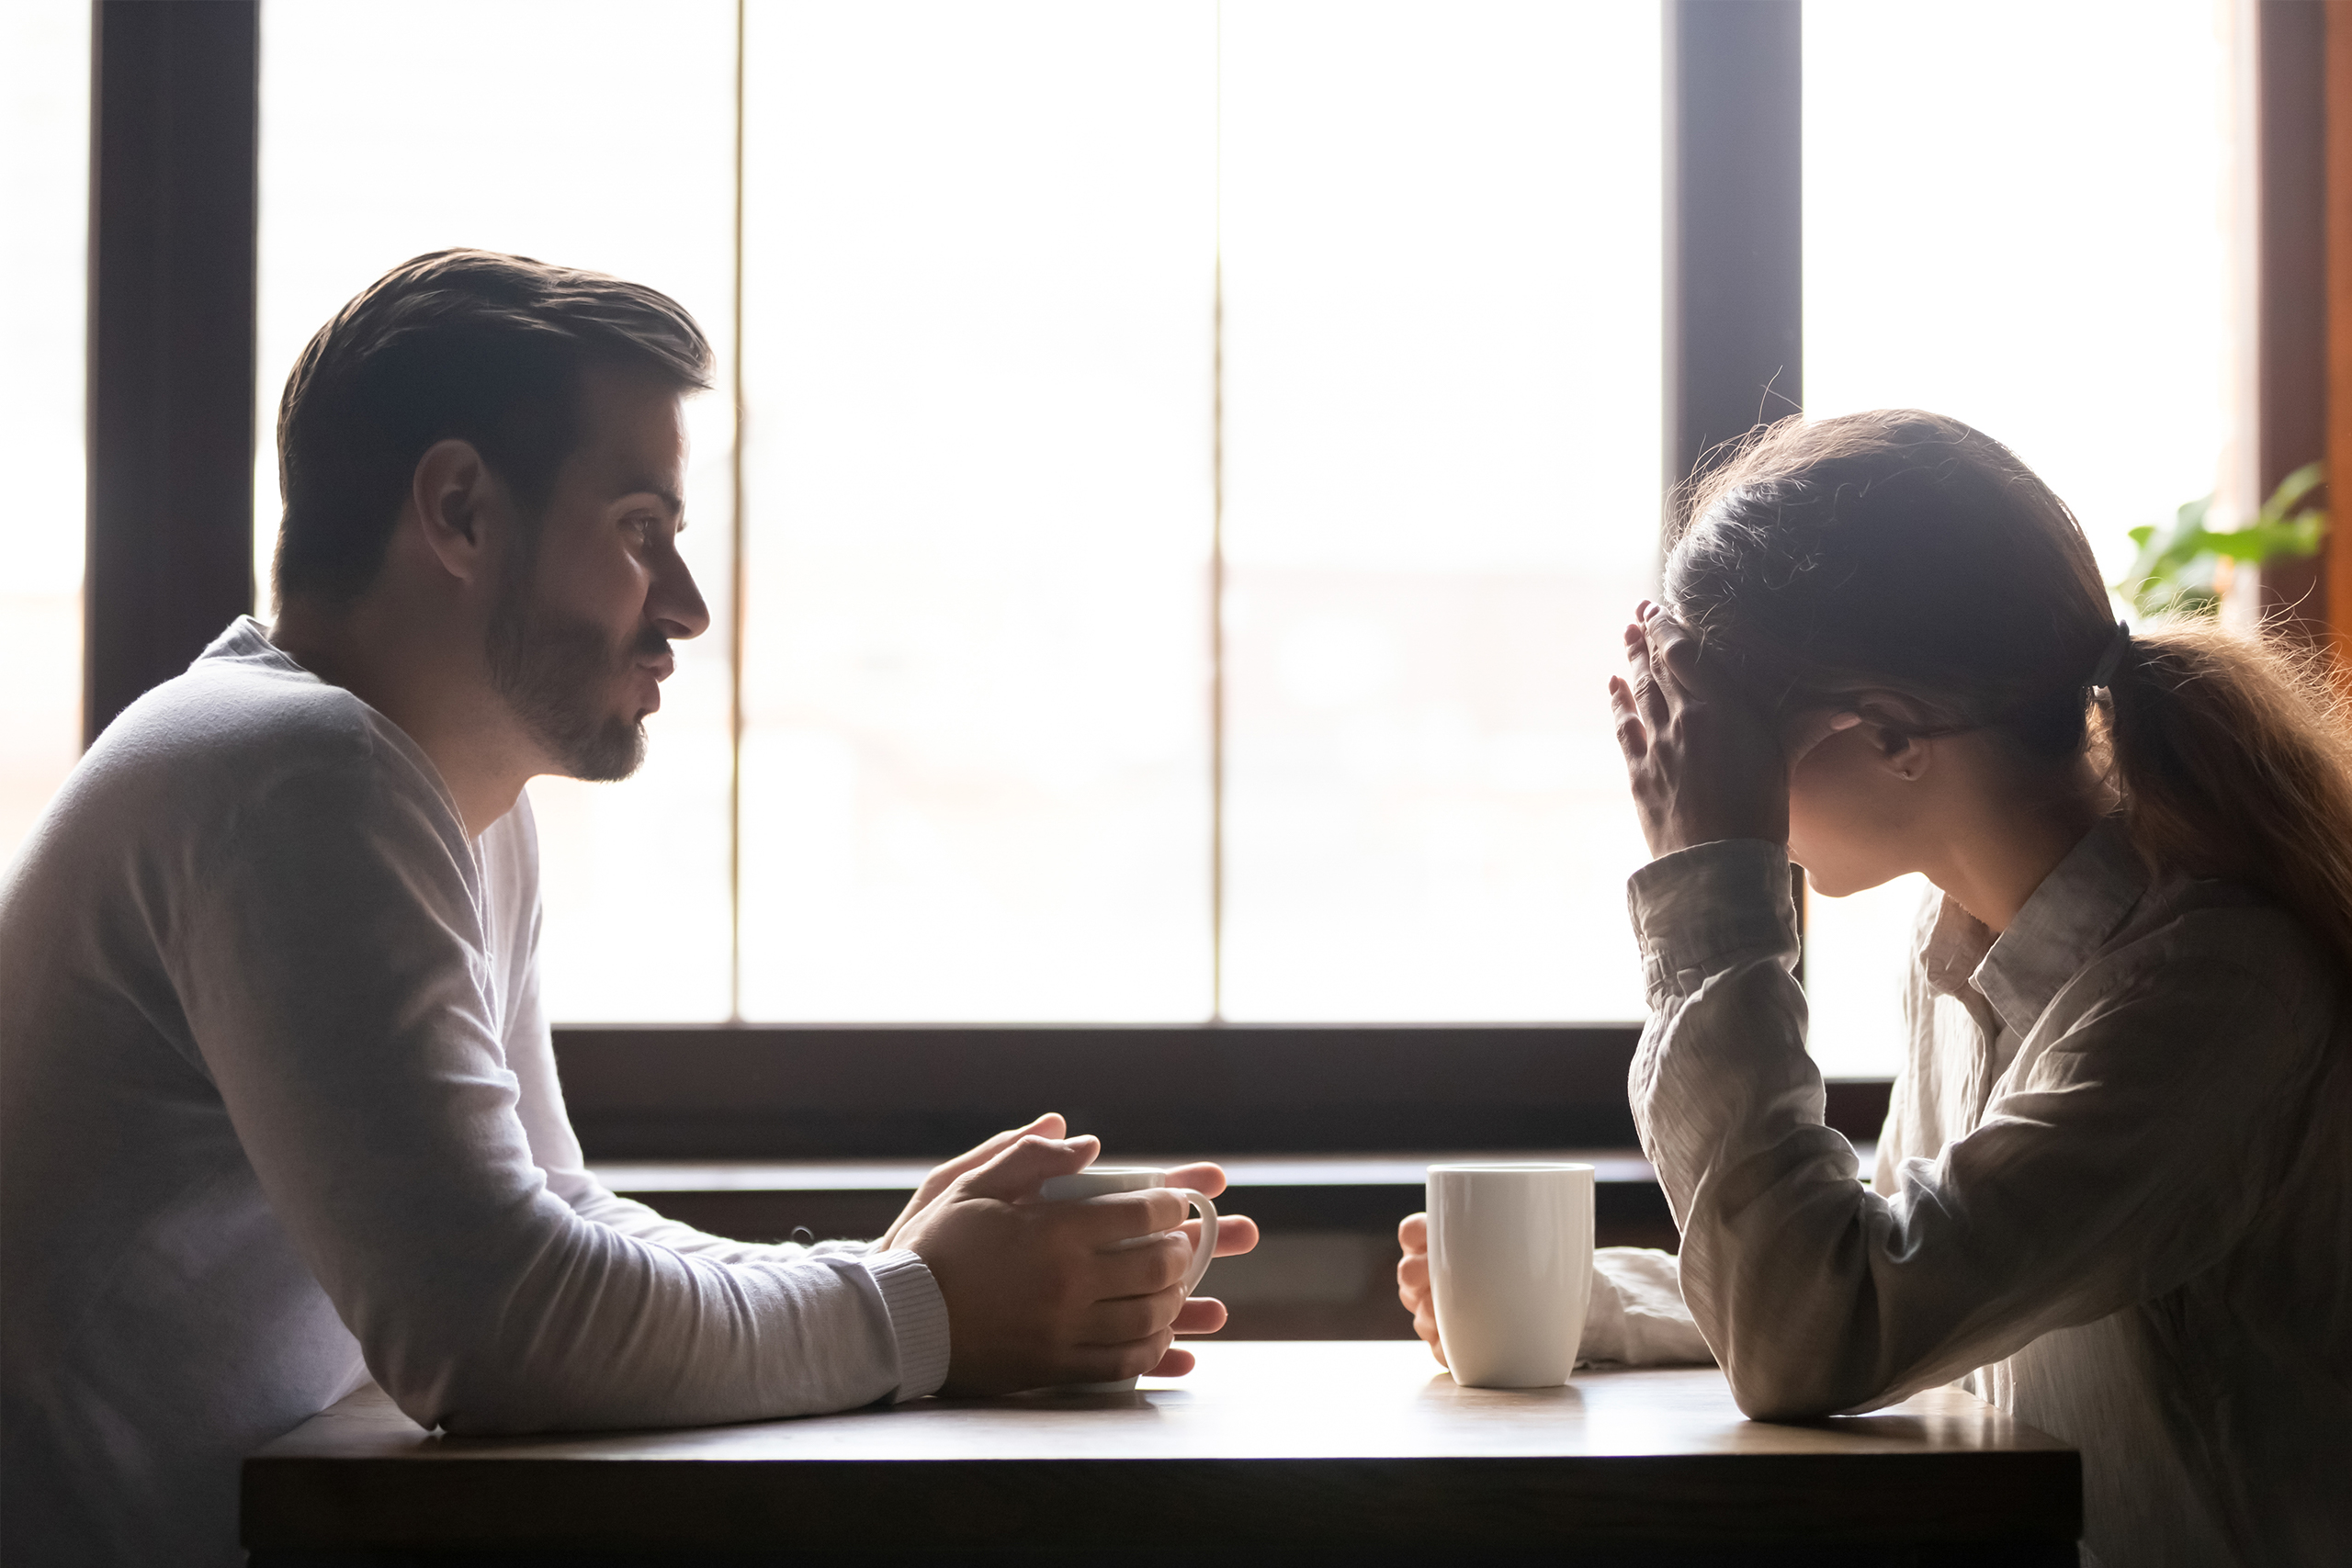 Why Listening is Important in a Relationship